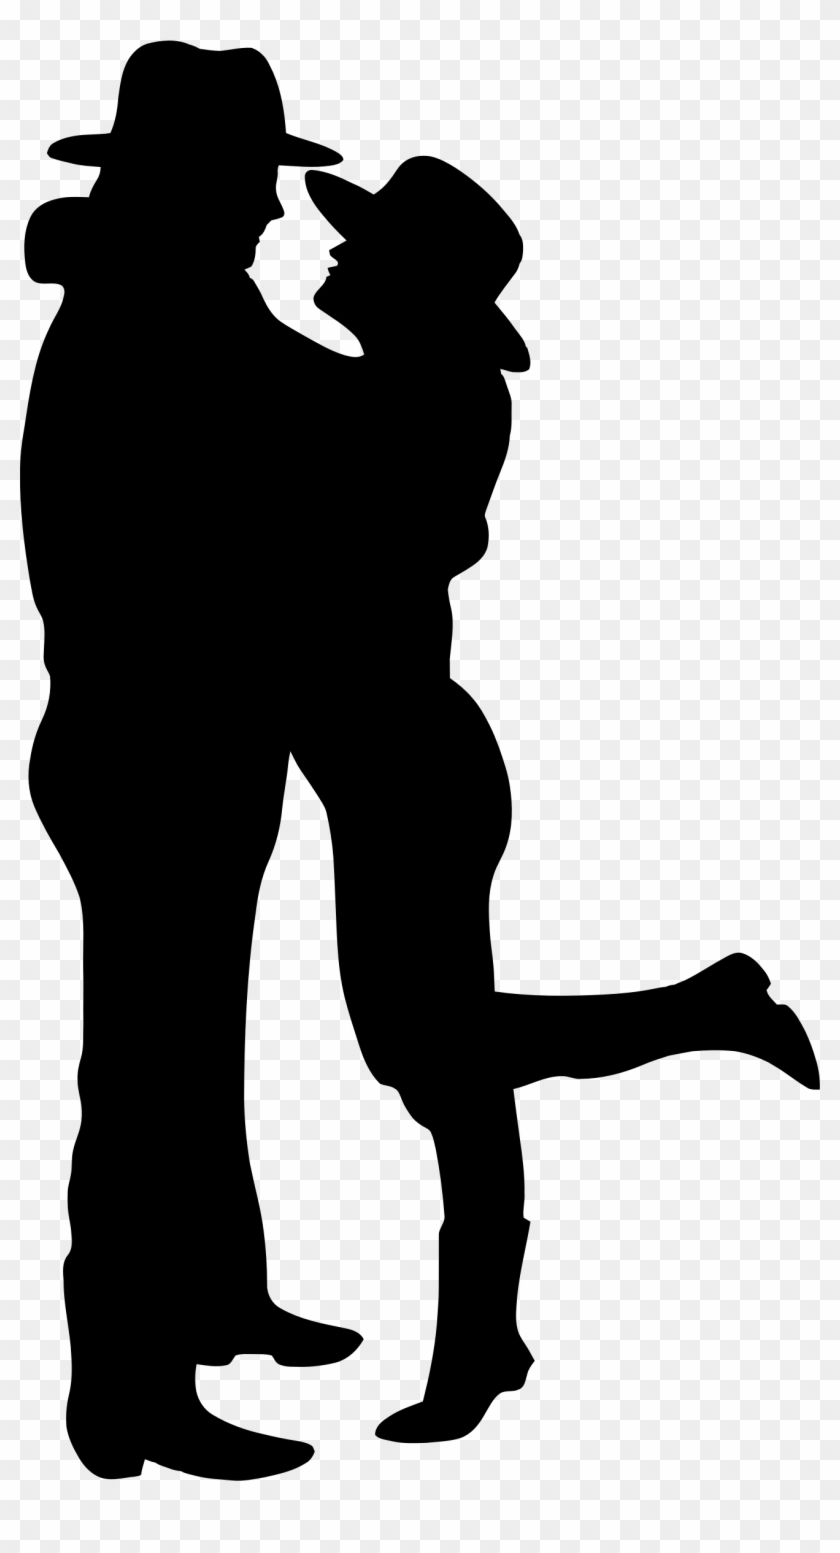 Cowboy Clipart Silhouette - Cowboy And Cowgirl Silhouette #6047